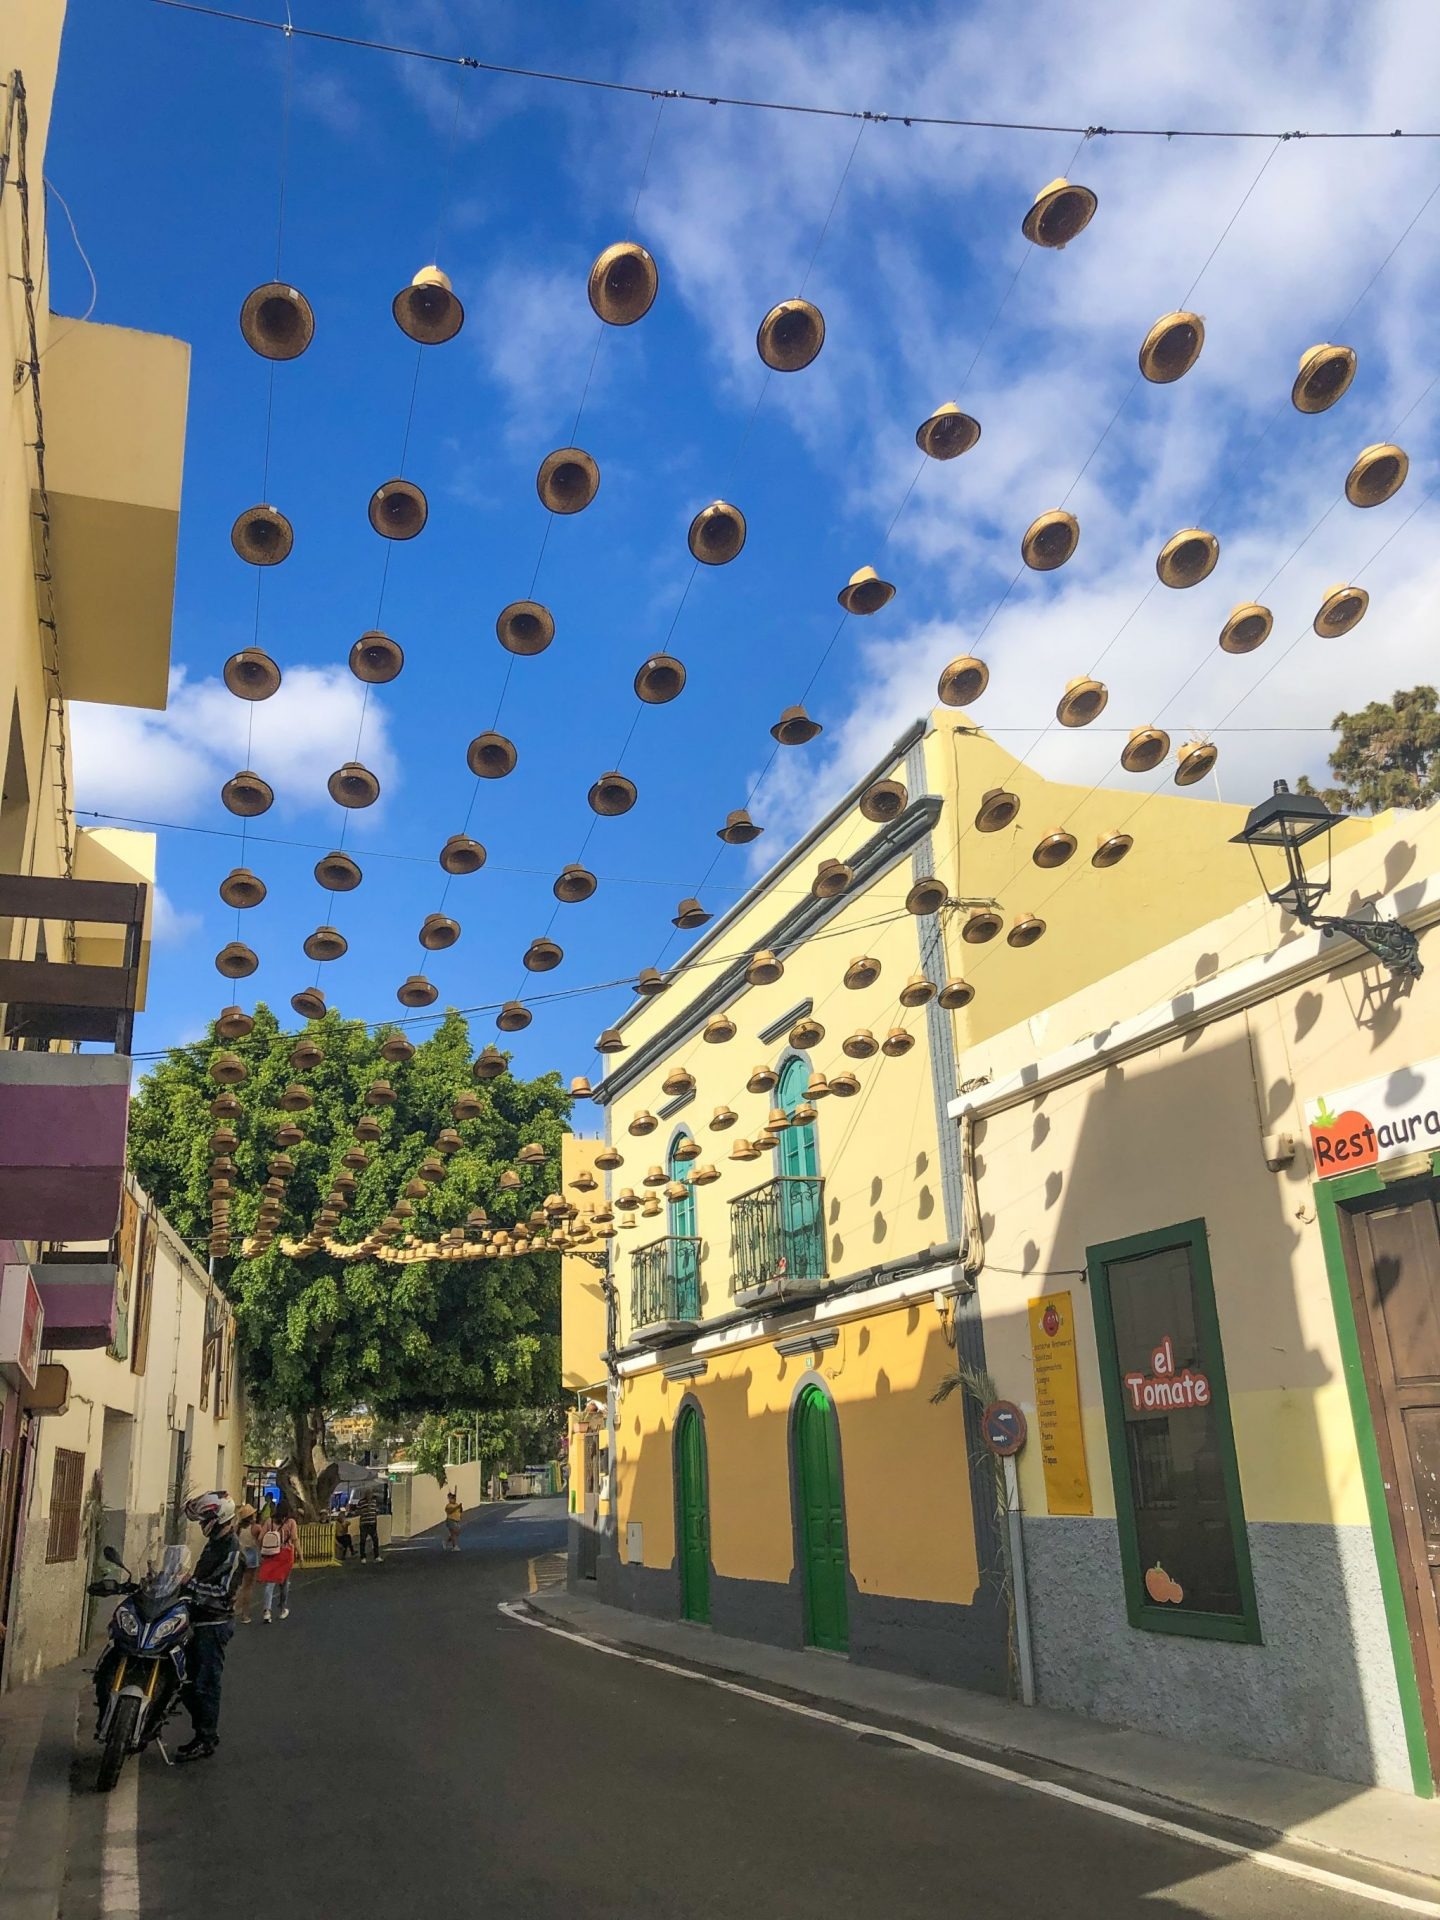 A street in Gran Canaria where hats hang over the road